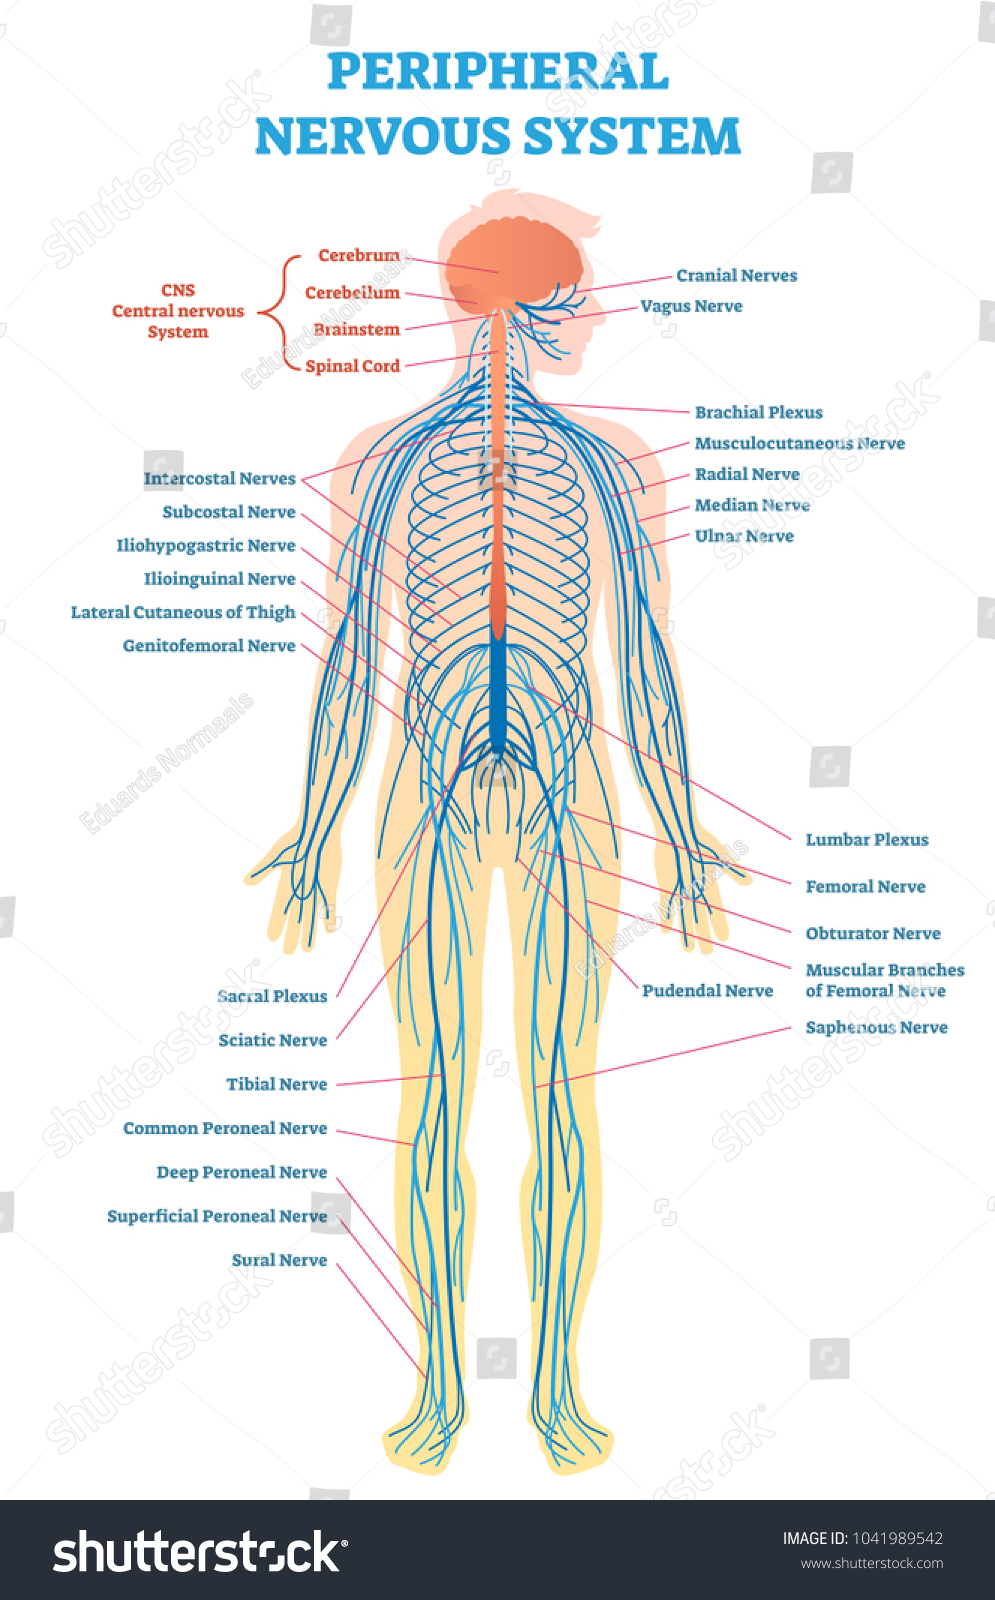 Peripheral Nervous System Medical Vector Illustration Stock Vector